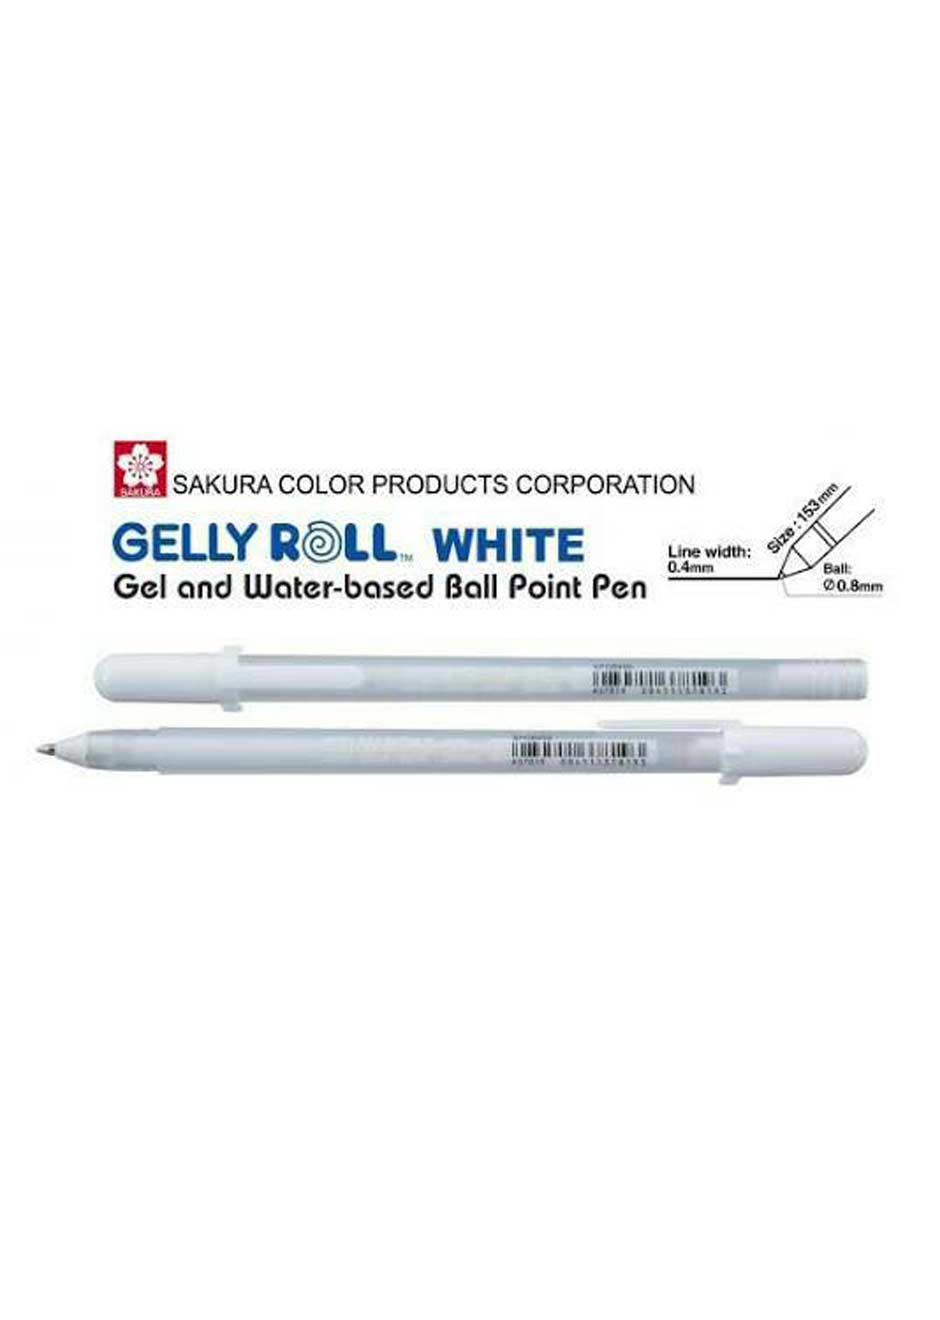 sakura-gelly-roll-white-pen